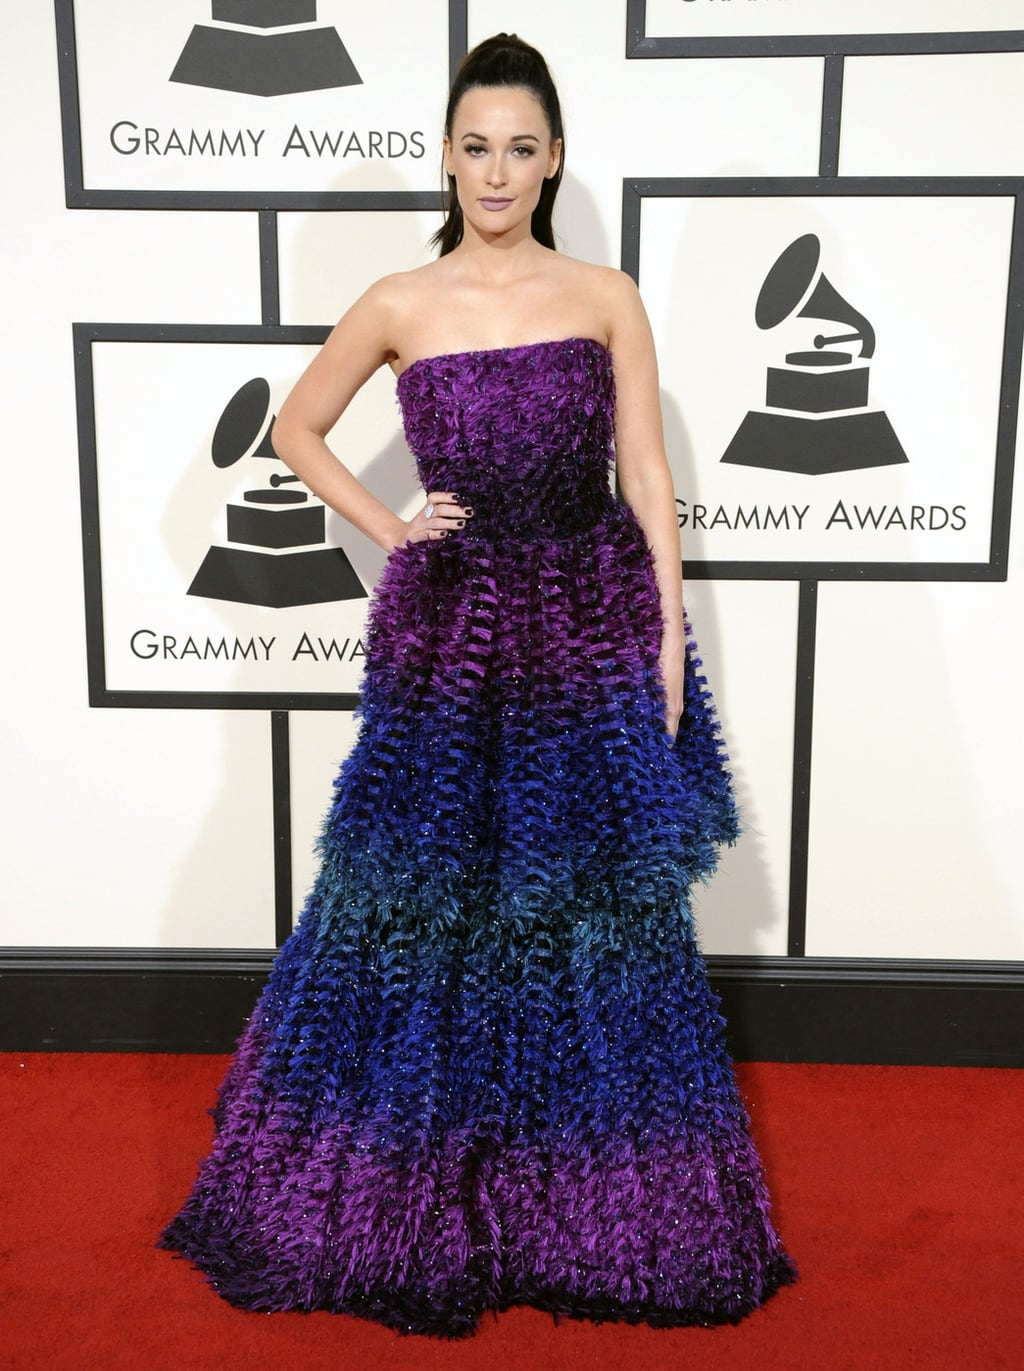 Kacey Musgraves in Armani Prive at the 2016 Grammy Awards